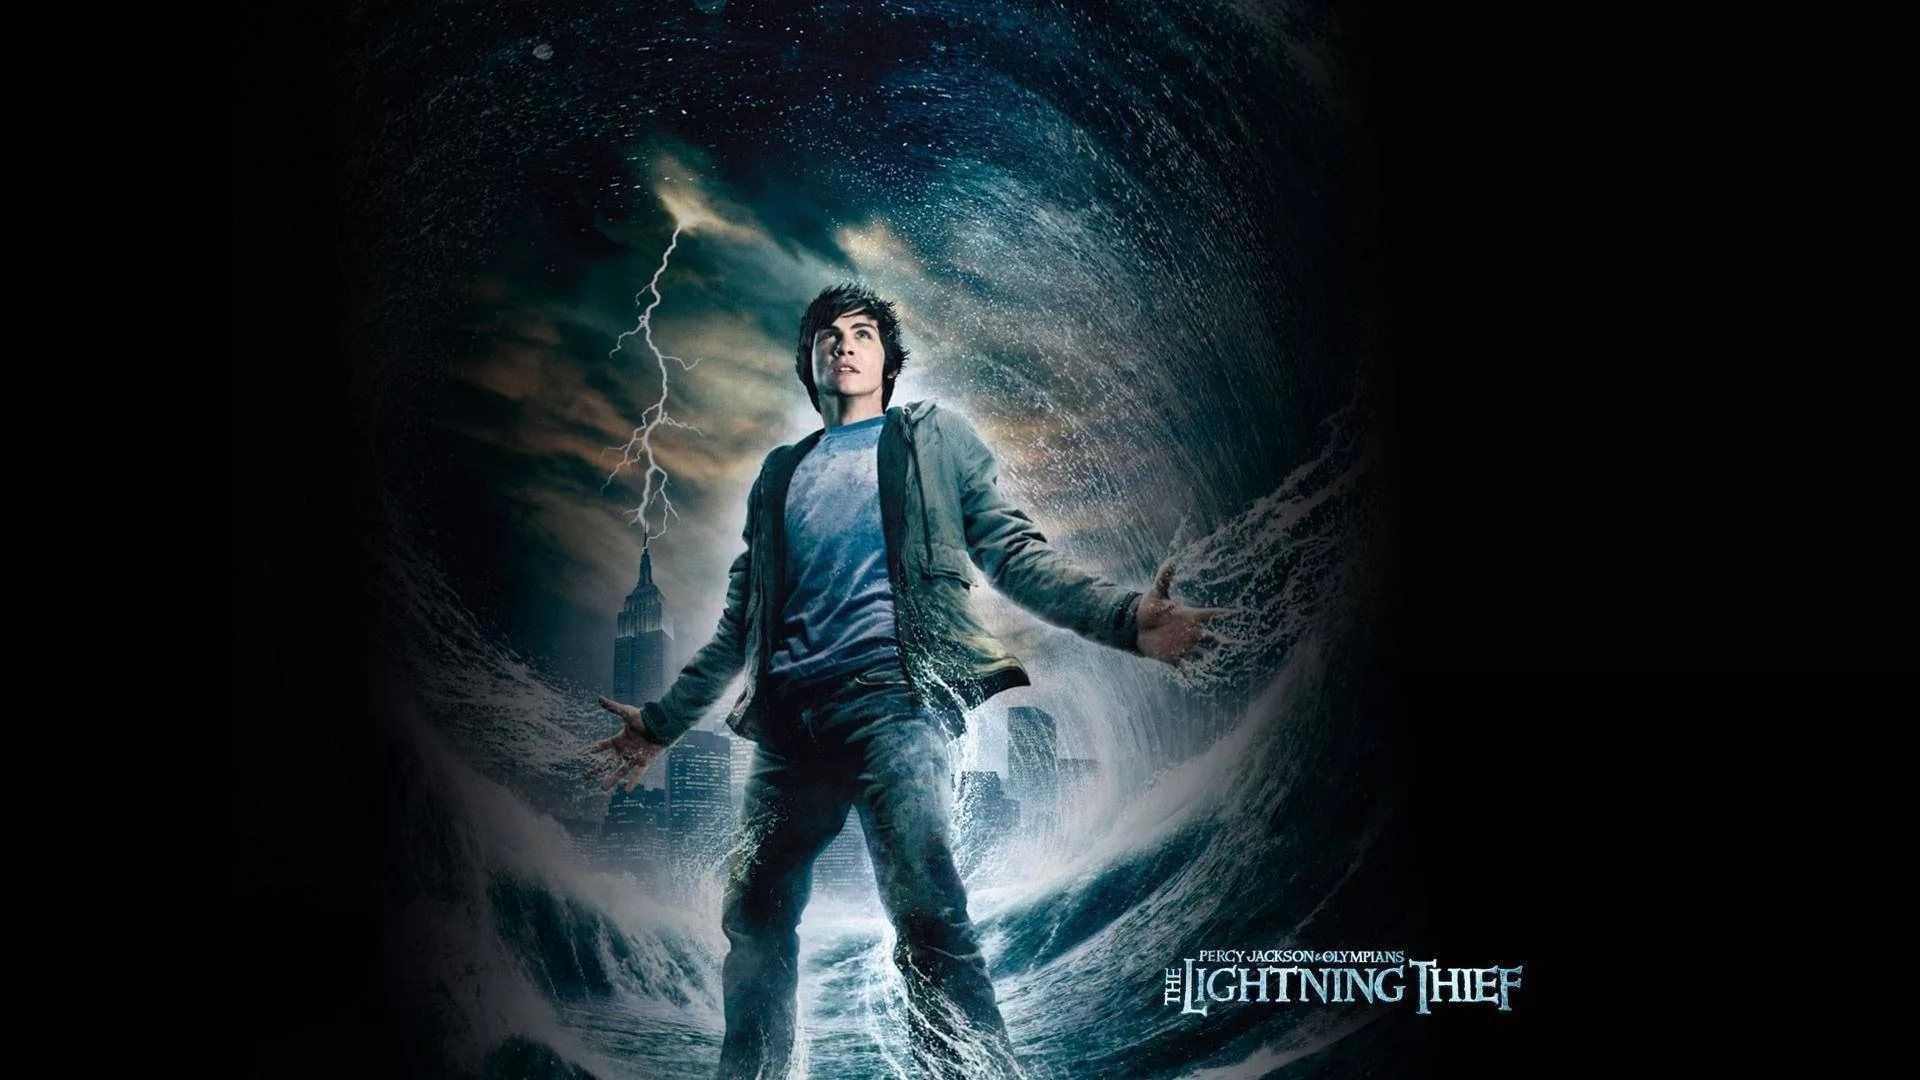 Percy Jackson Free Wallpaper and Background